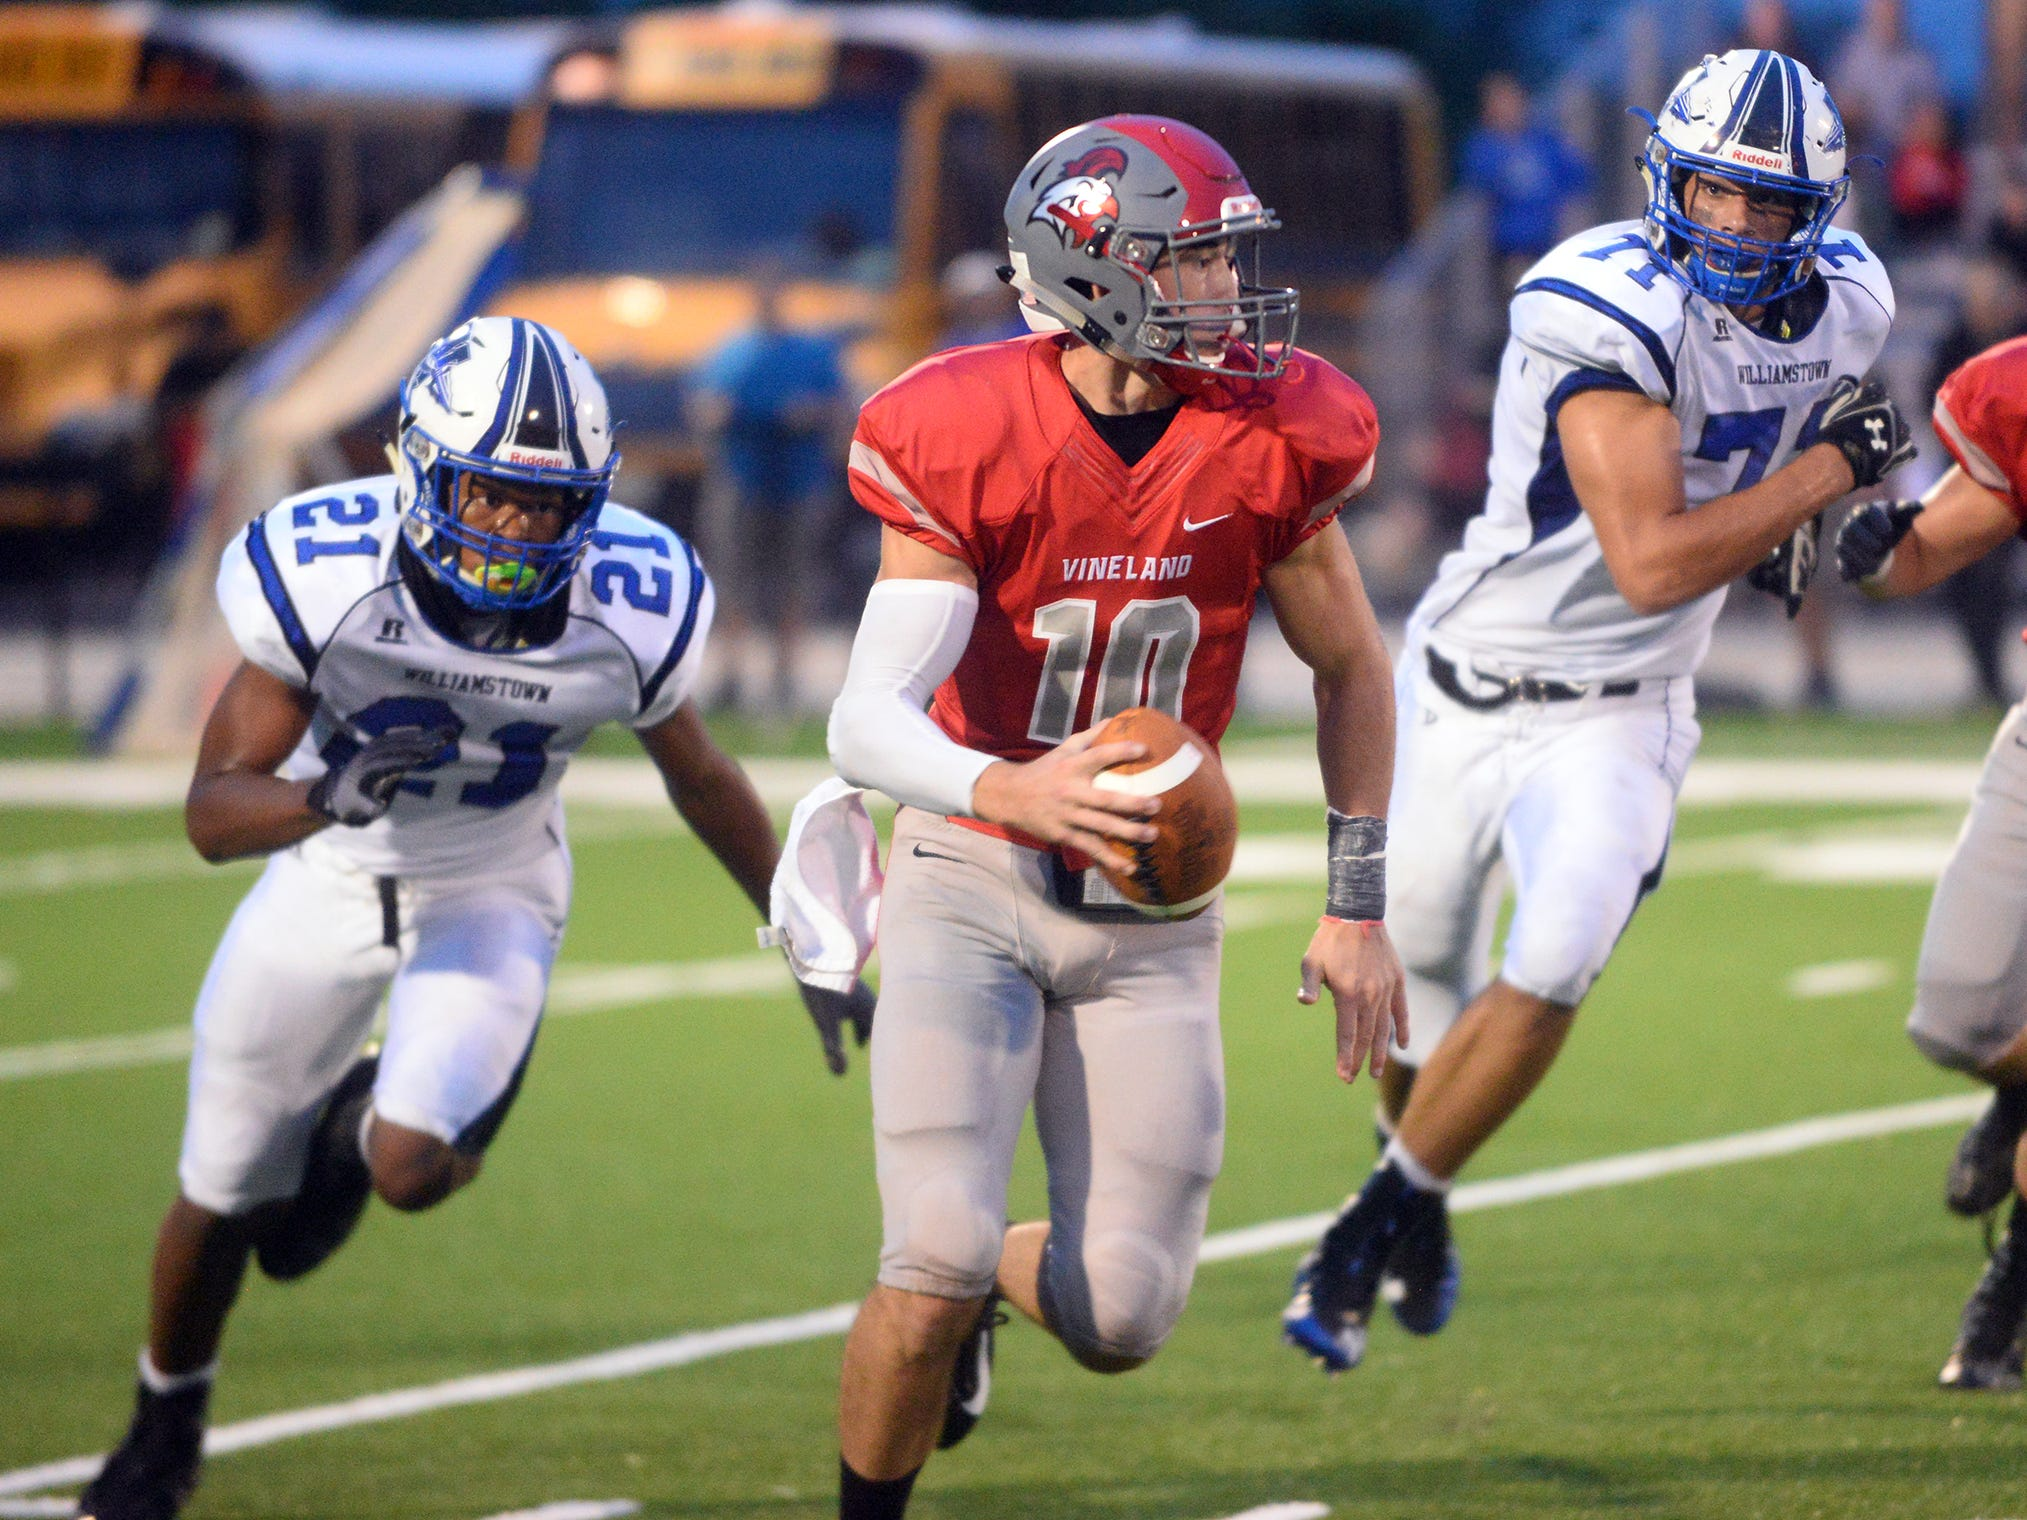 The Vineland High School football team dropped its season opener 24-7 to visiting Williamstown on Friday, August 31. The Fighting Clan's next game is away against Atlantic City.